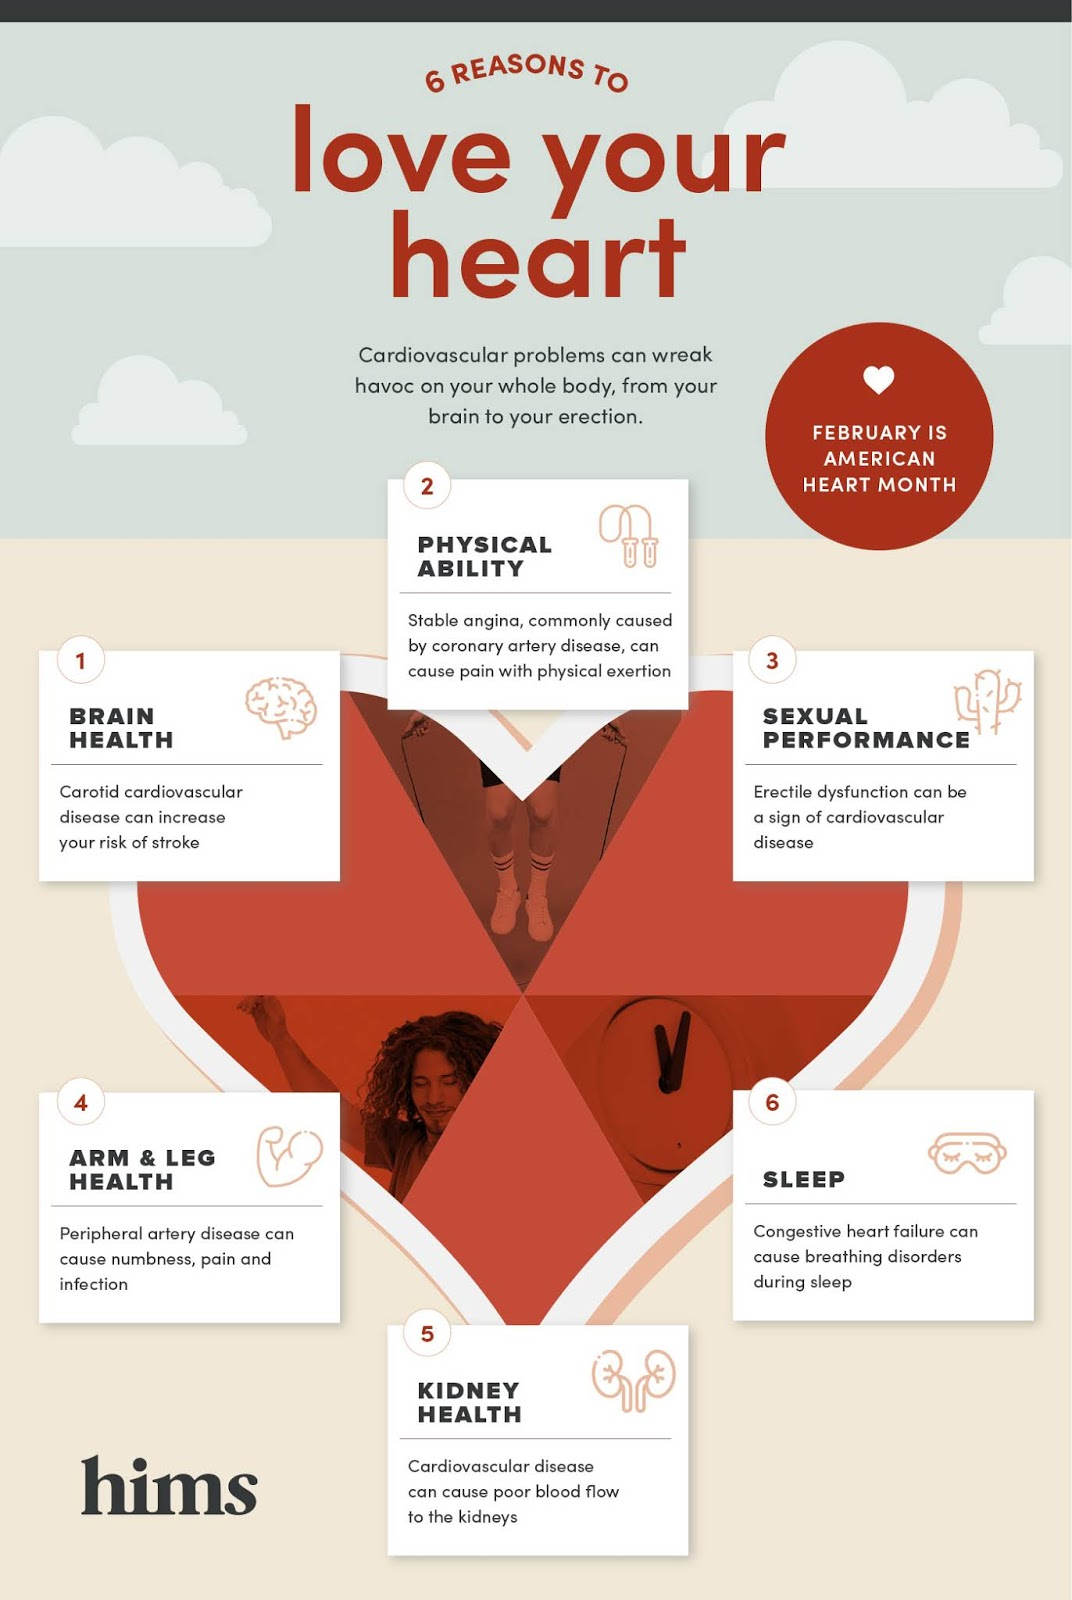 6 Reasons To Love Your Heart